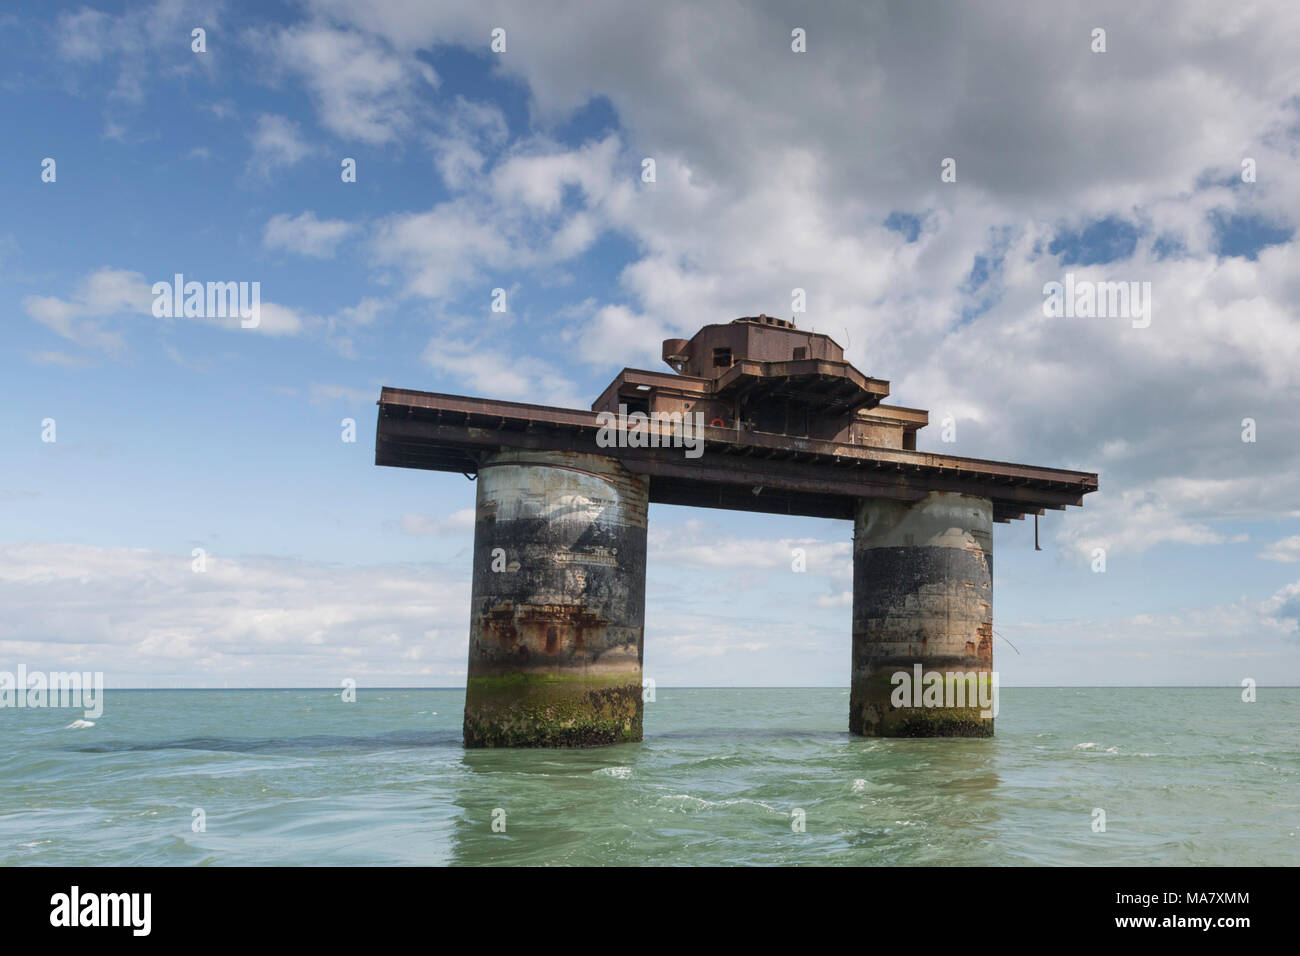 The World War II Maunsell Forts in the Thames Estuary off the North Kent coast. - Stock Image